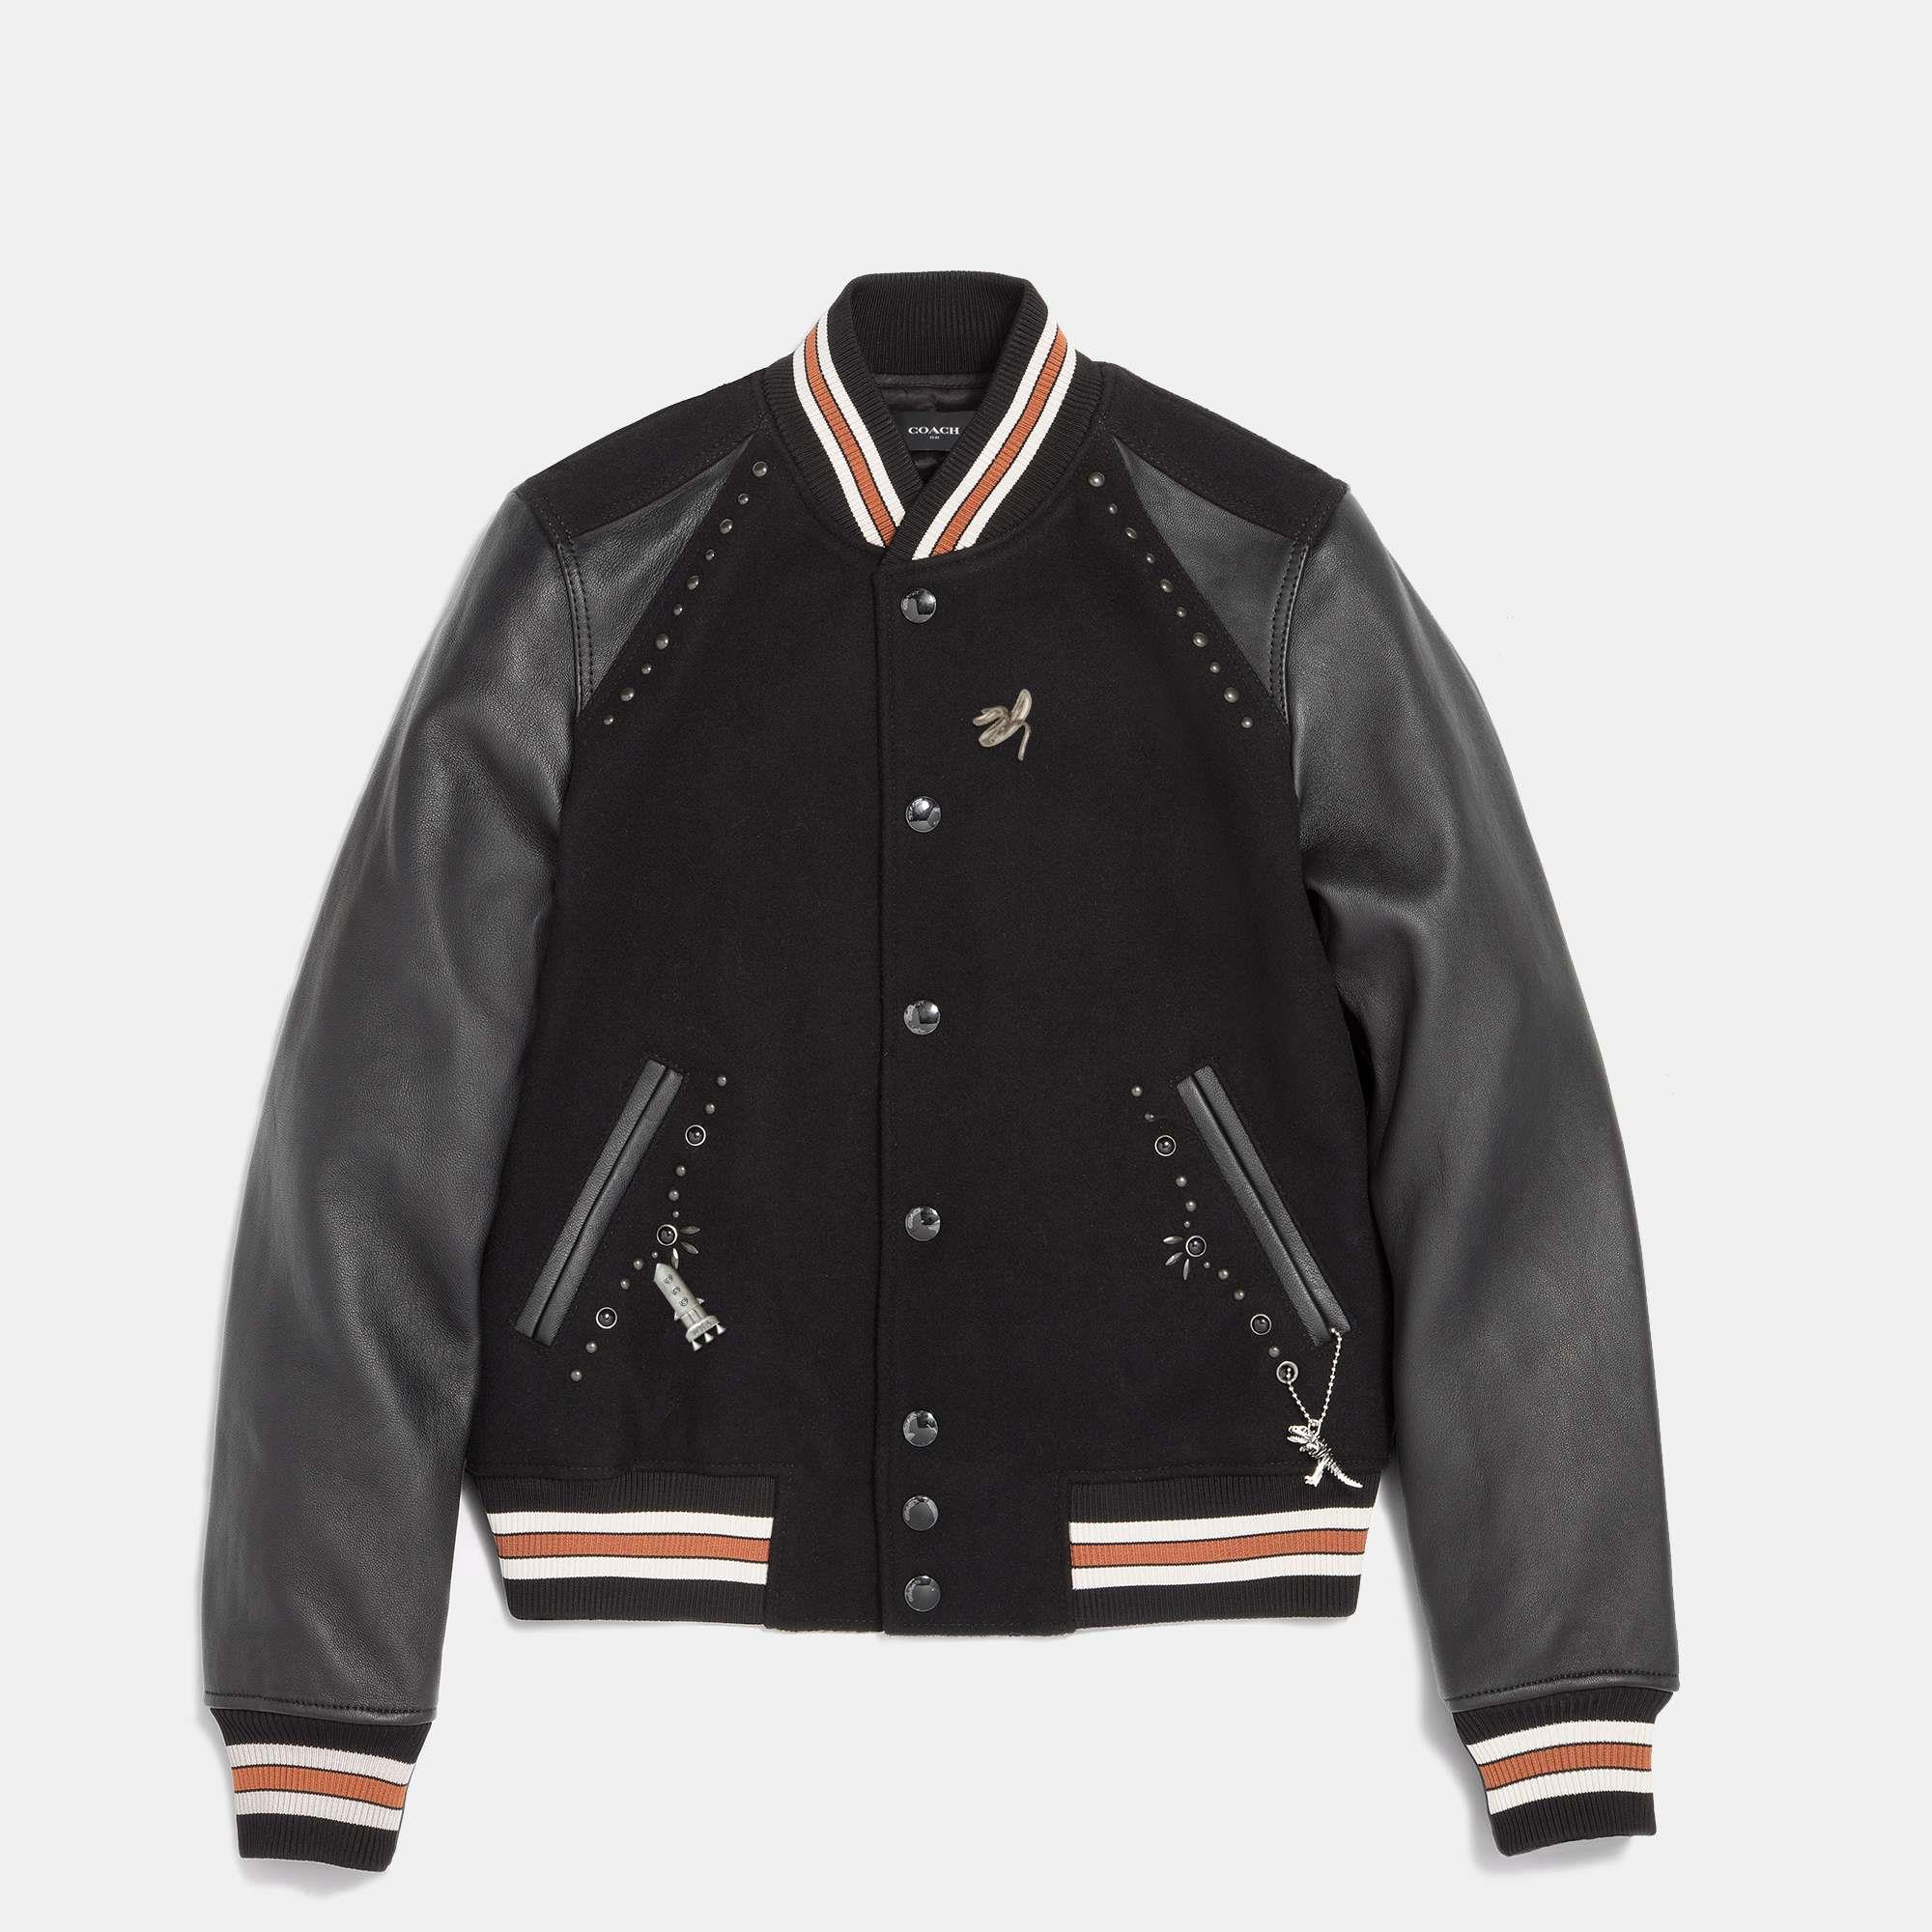 Customize BLANK VARSITY JACKET